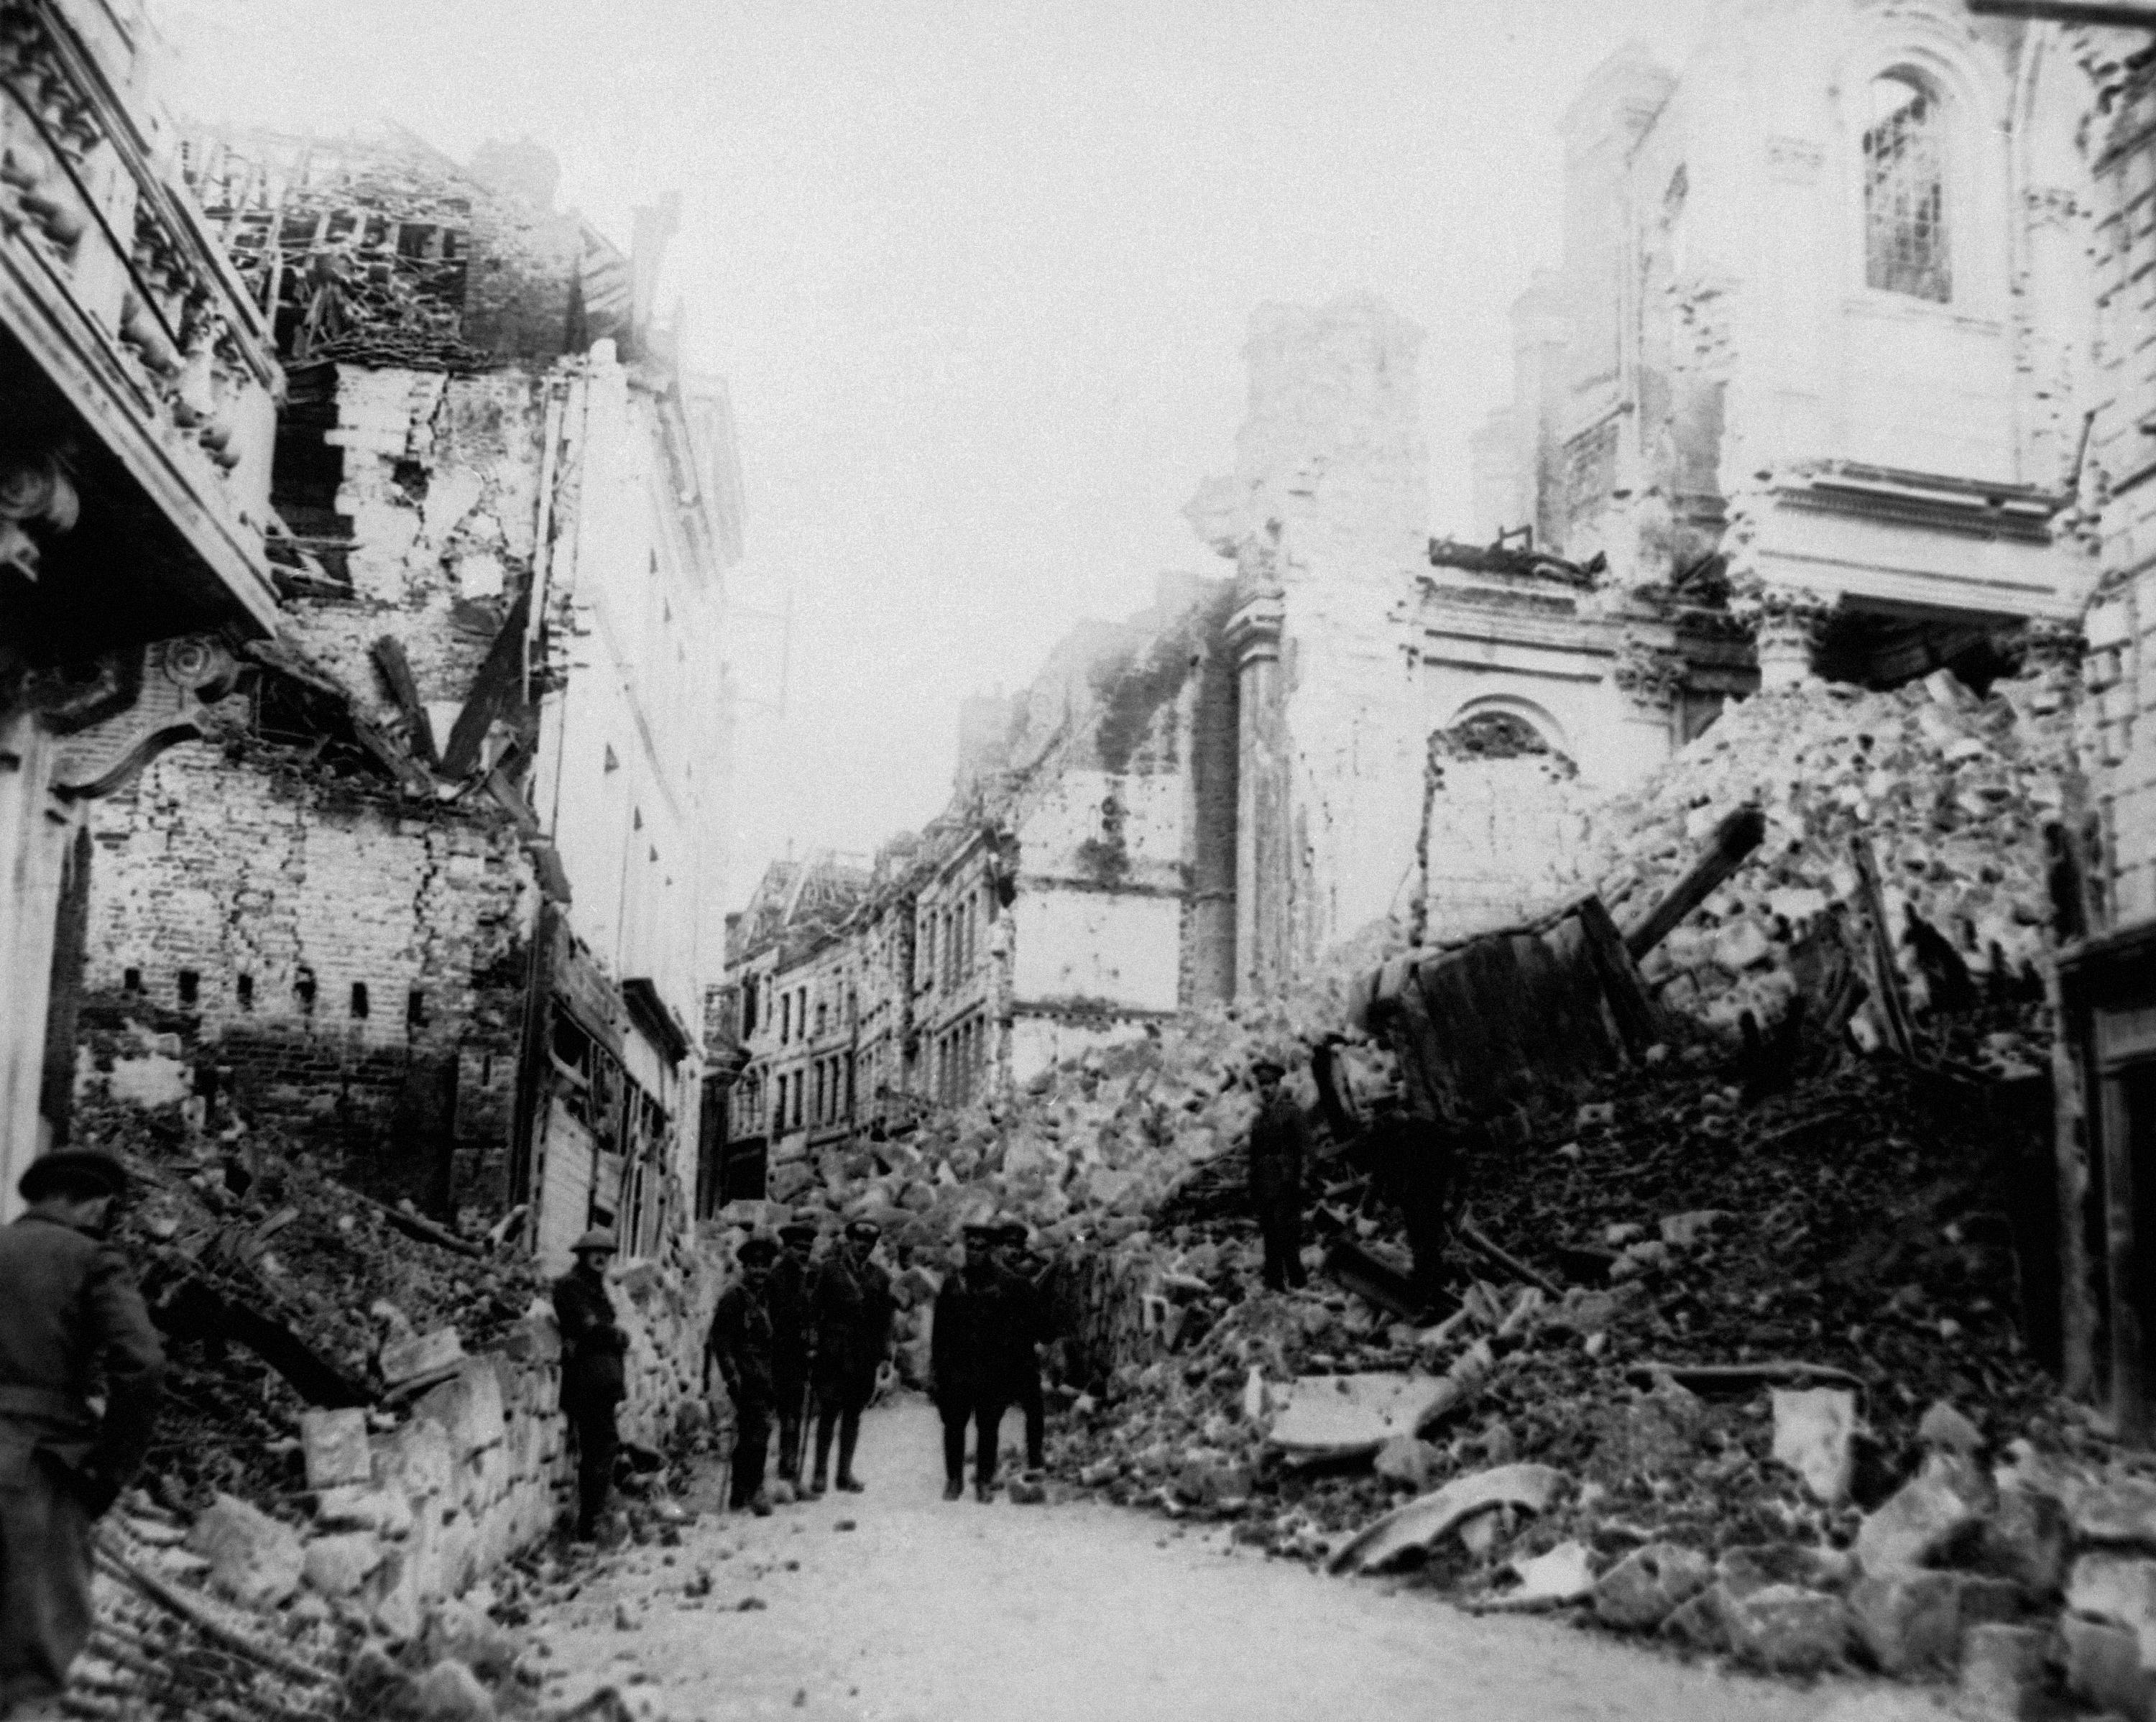 48 OF 100: In this August 1916 file photo, Gen. Sir Sam Hughes and an unidentified group look at ruins in Arras, France during World War I.